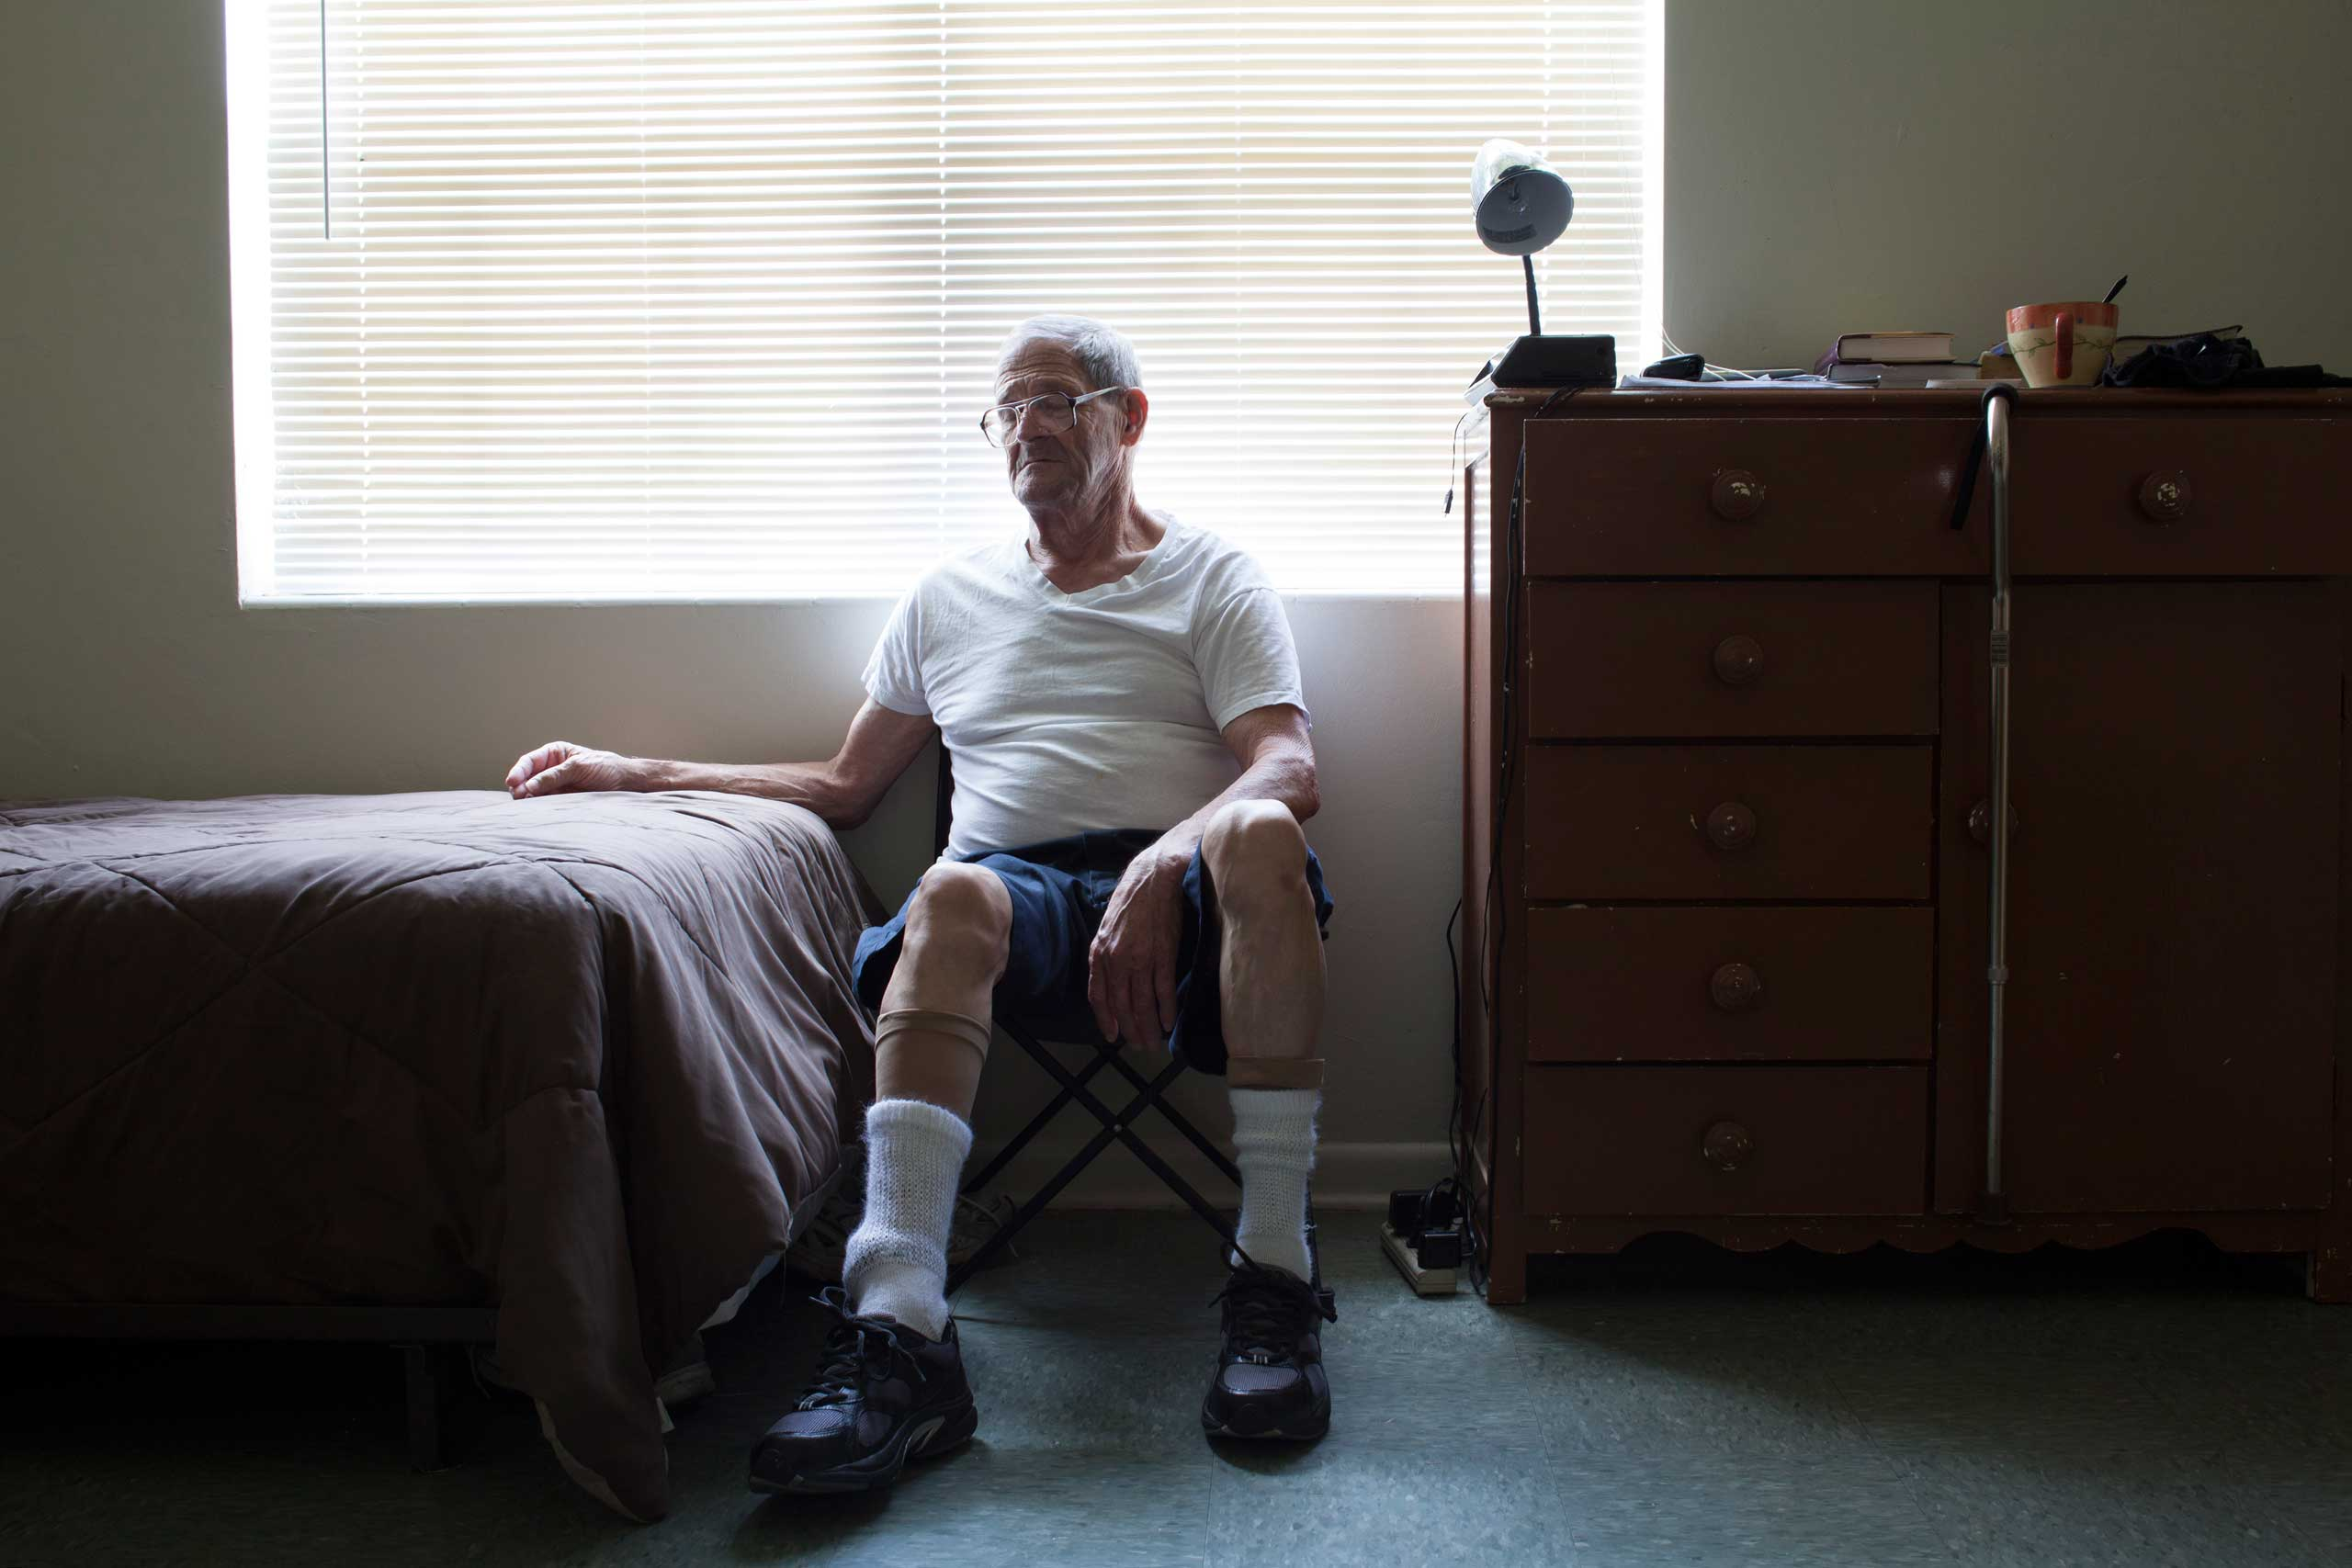 """Paul sitting beside his bed in his new home right after being released from prison. He has been a resident of Miracle Village for over a year """"There is no judging, for those who are here have the same name."""